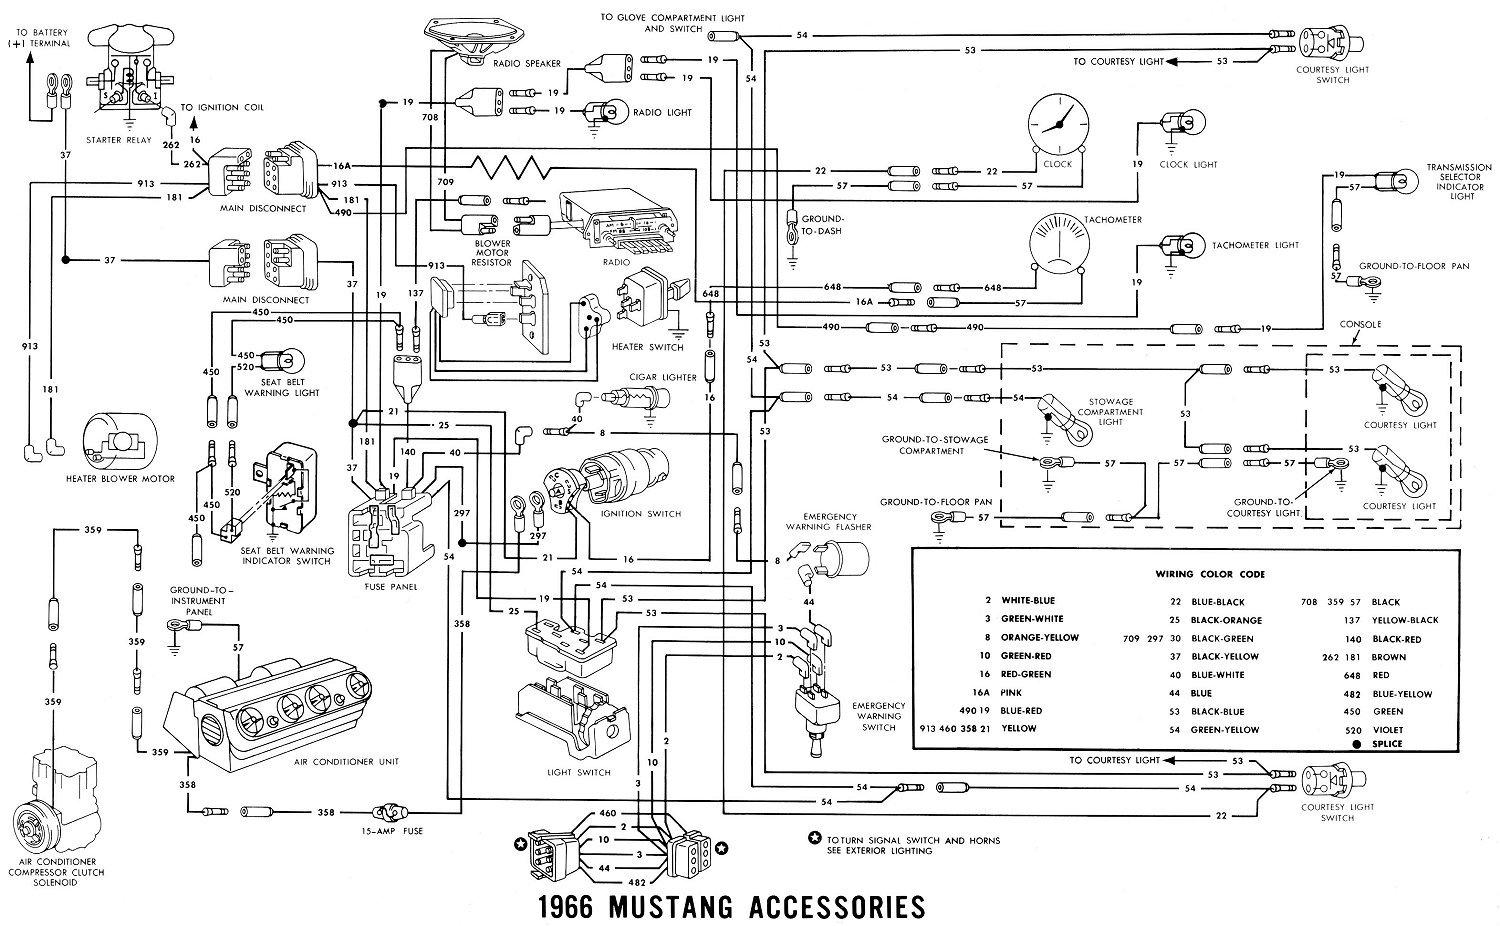 66acces1 vintage mustang wiring diagrams 1965 mustang wiring diagram at bayanpartner.co